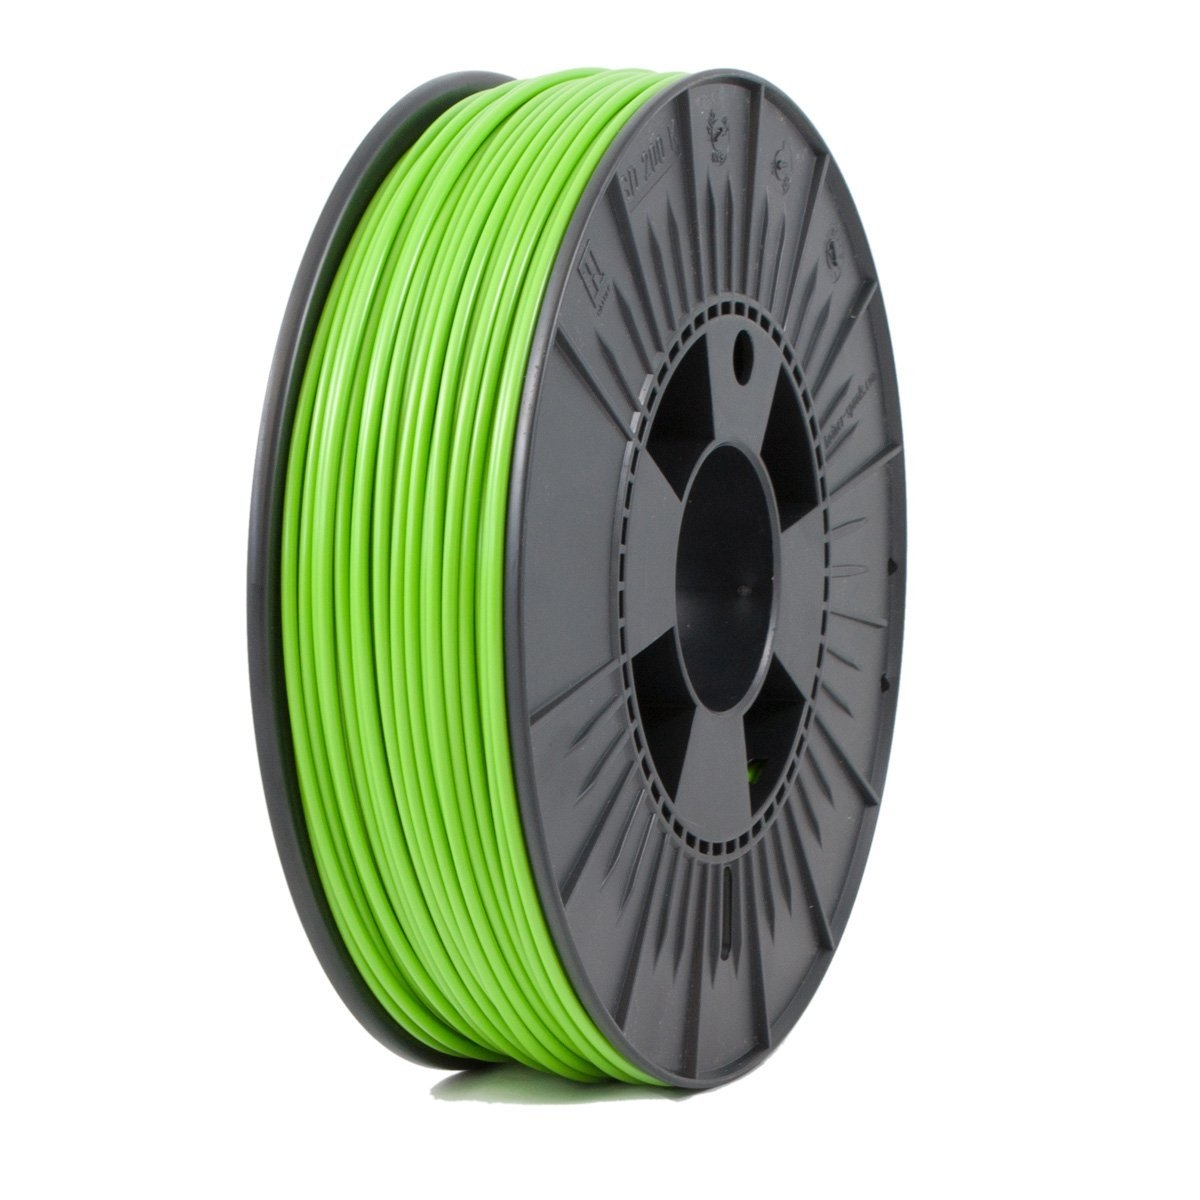 Ice Filaments  Gracious Green ABS 2.85 mm